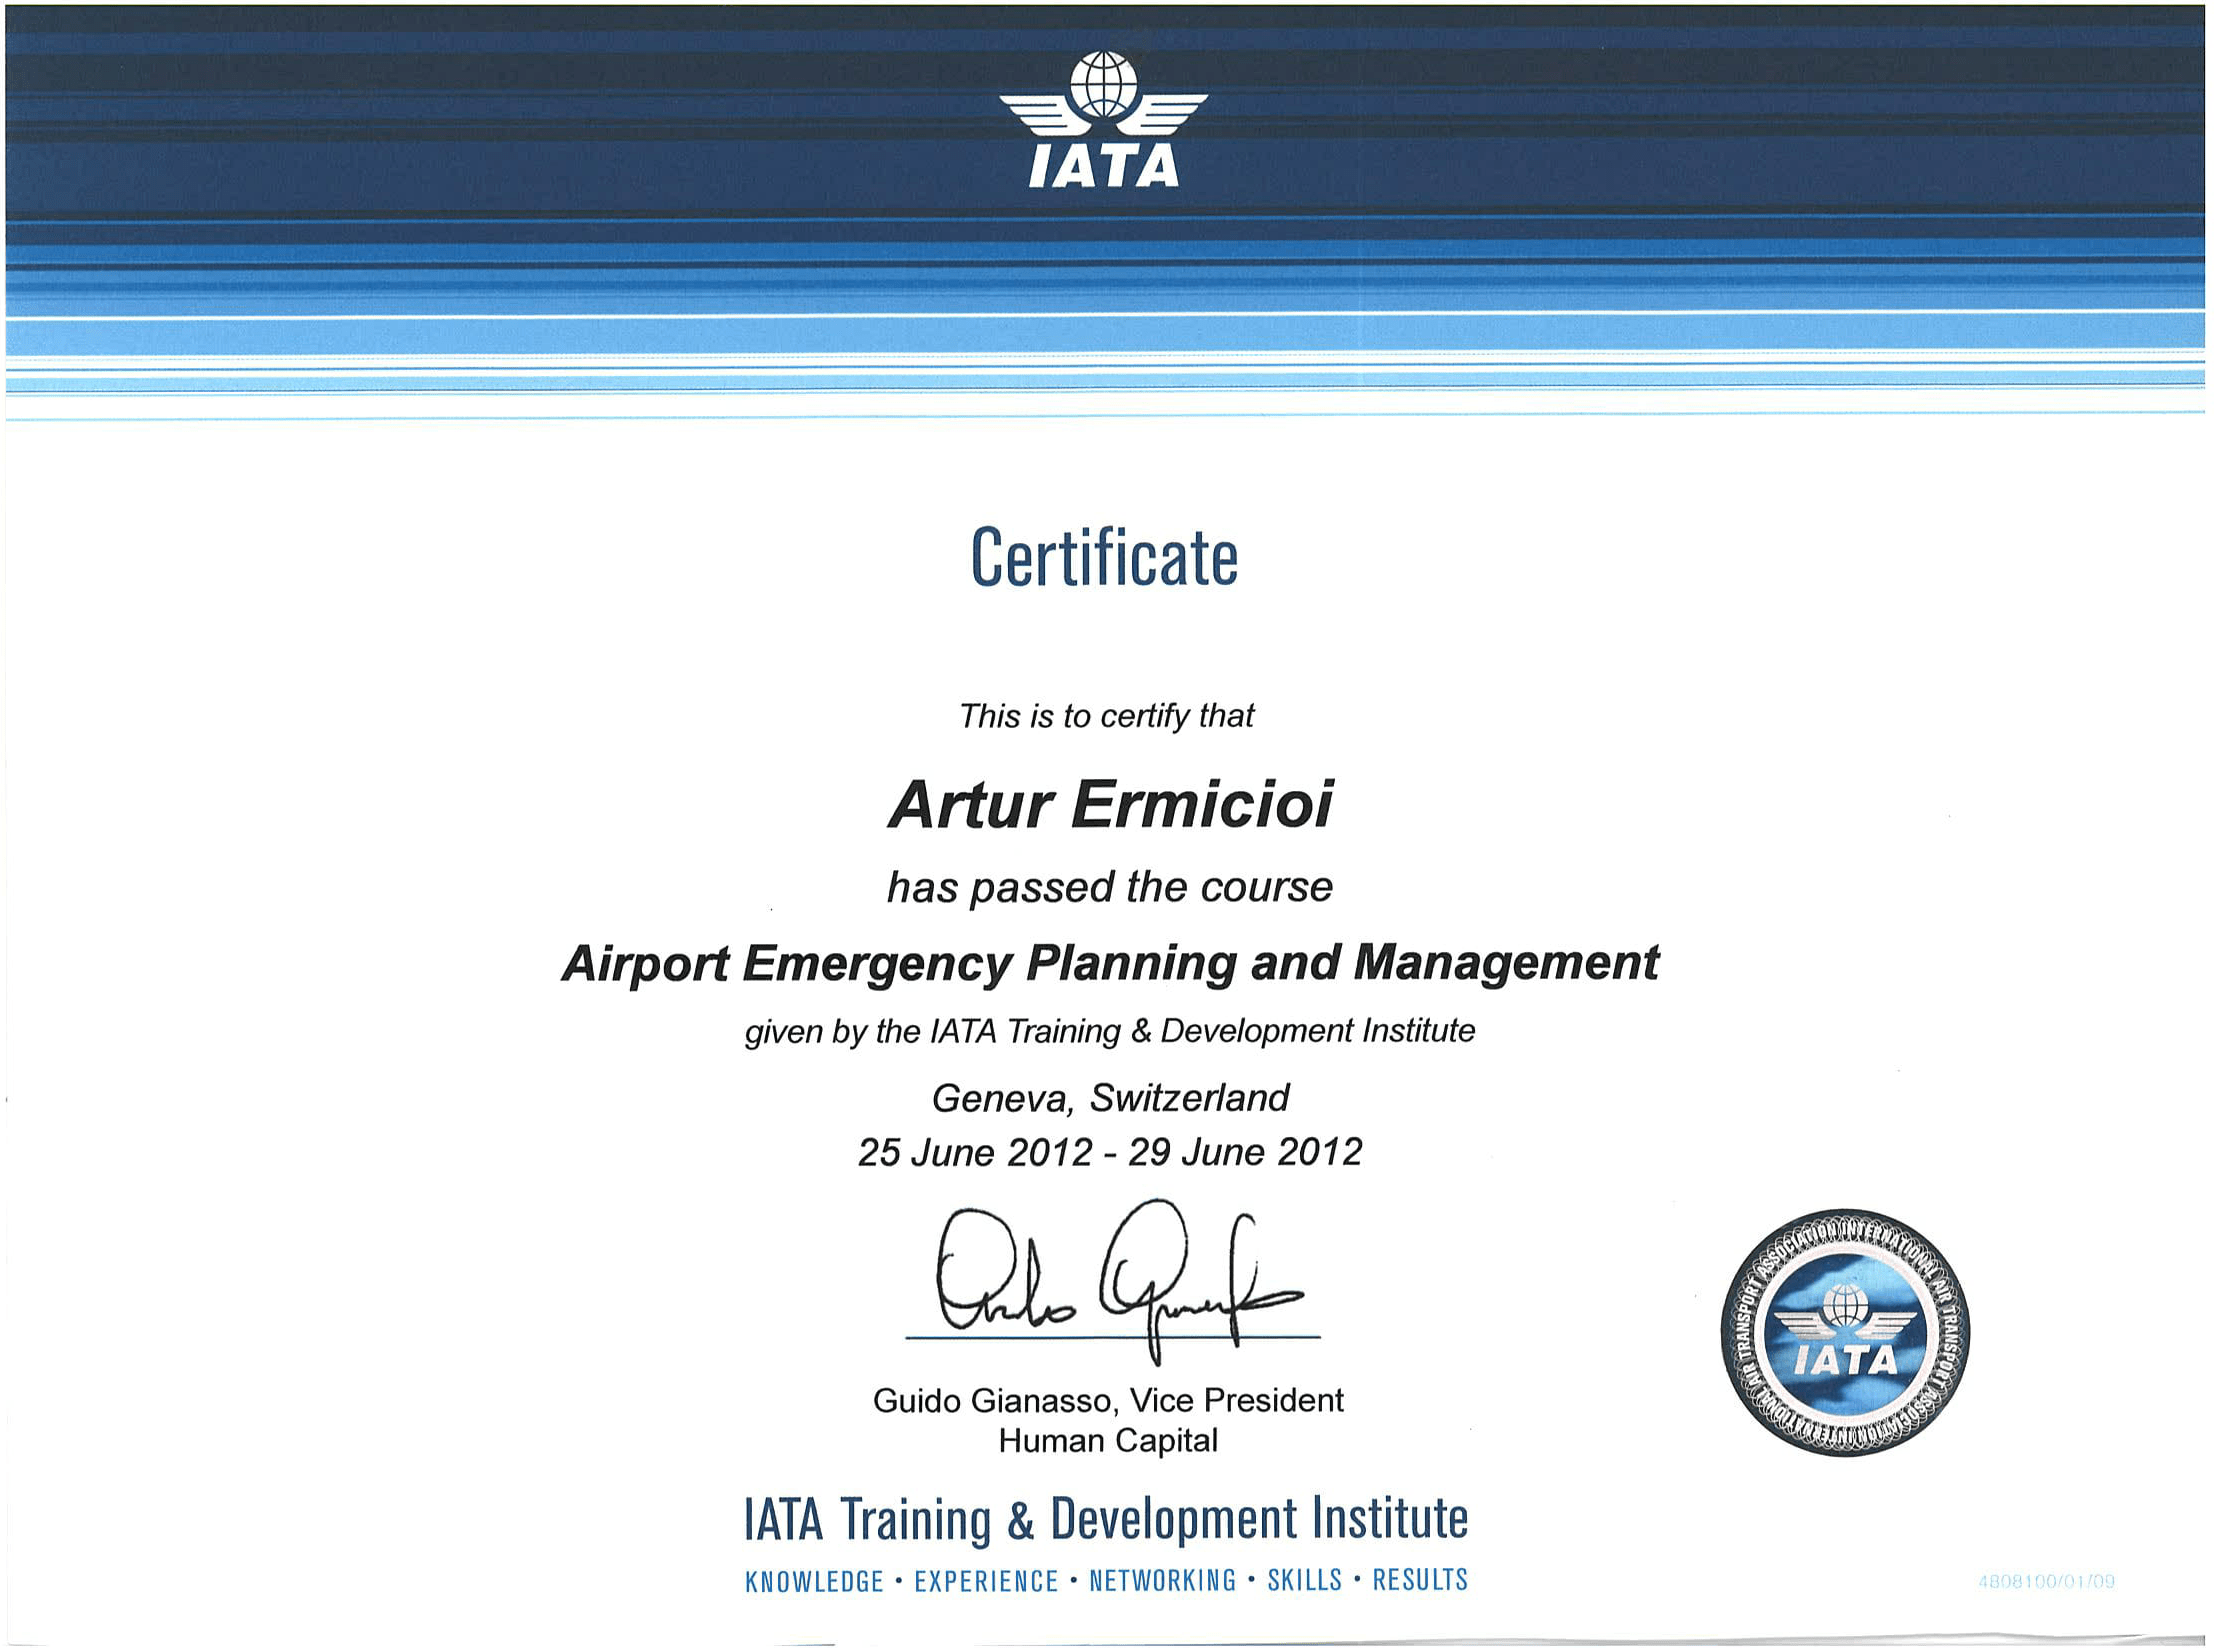 iata training certificates handling trainer practitioners successfully specialists experienced centers completed leading companies european education air